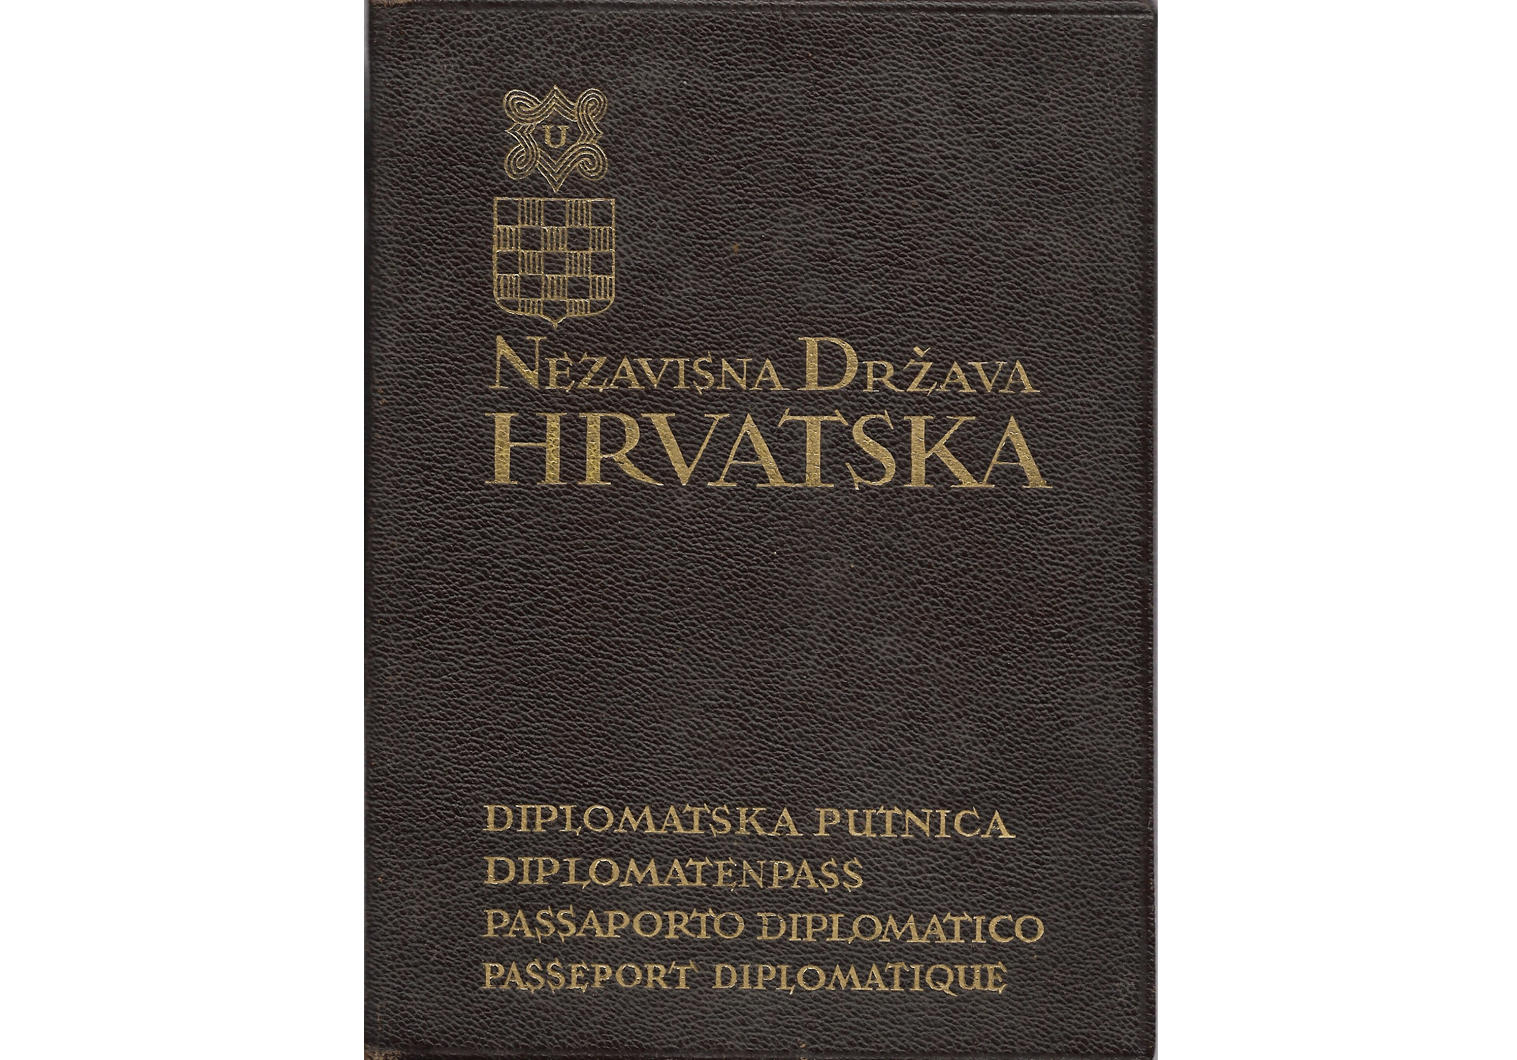 Croatian Foreign Minister's Diplomatic passport